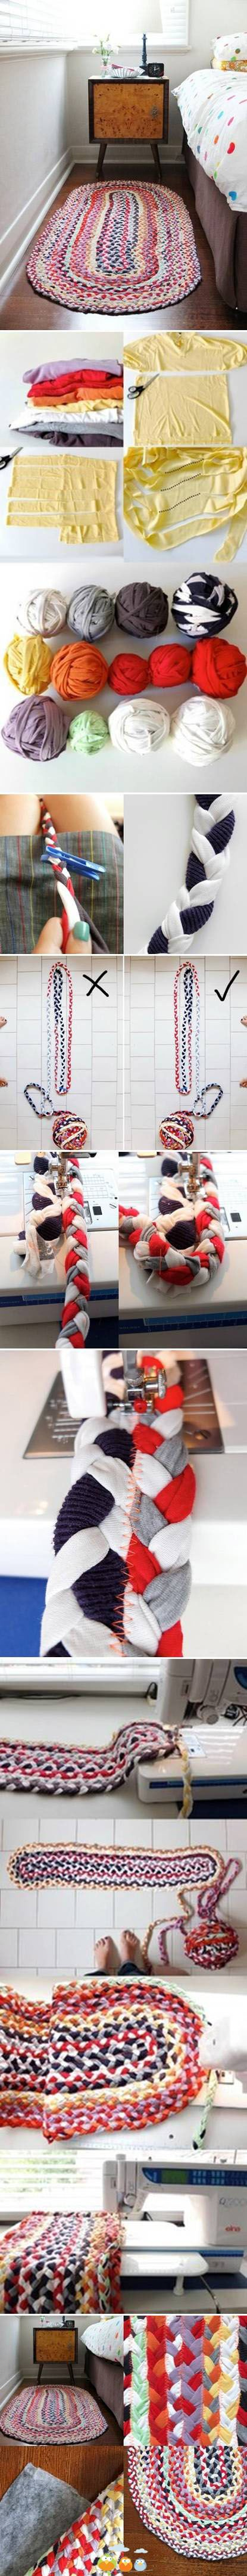 sew the braid together using a sewing machine zig-zag stitch! The fabric strips may need to be thinner.